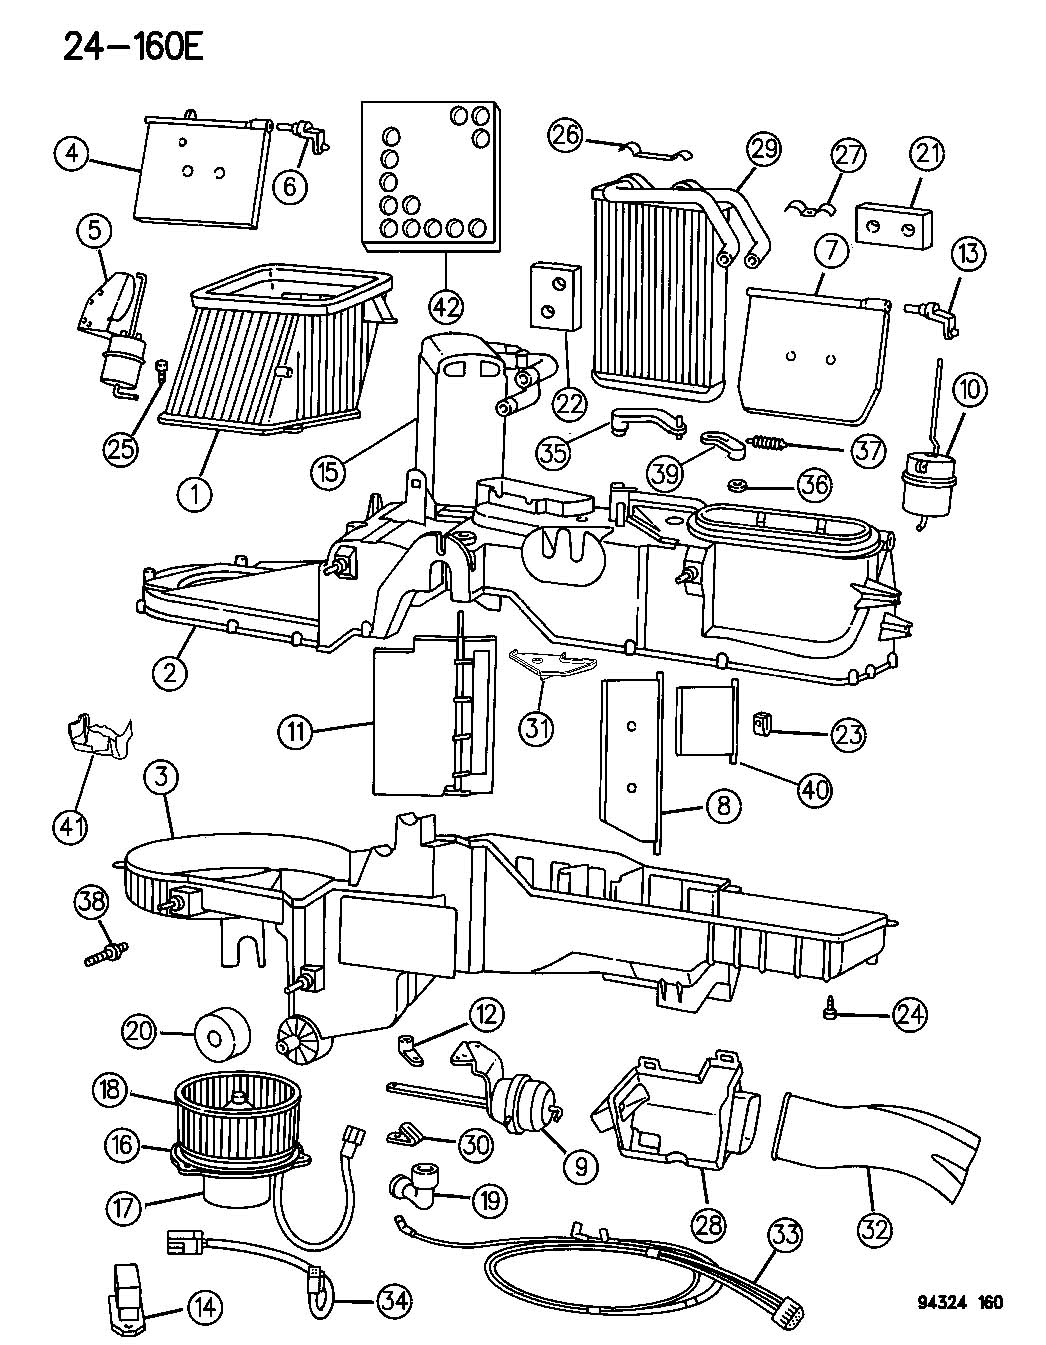 Mitsubishi Mirage Throttle Parts Diagram Mitsubishi Auto